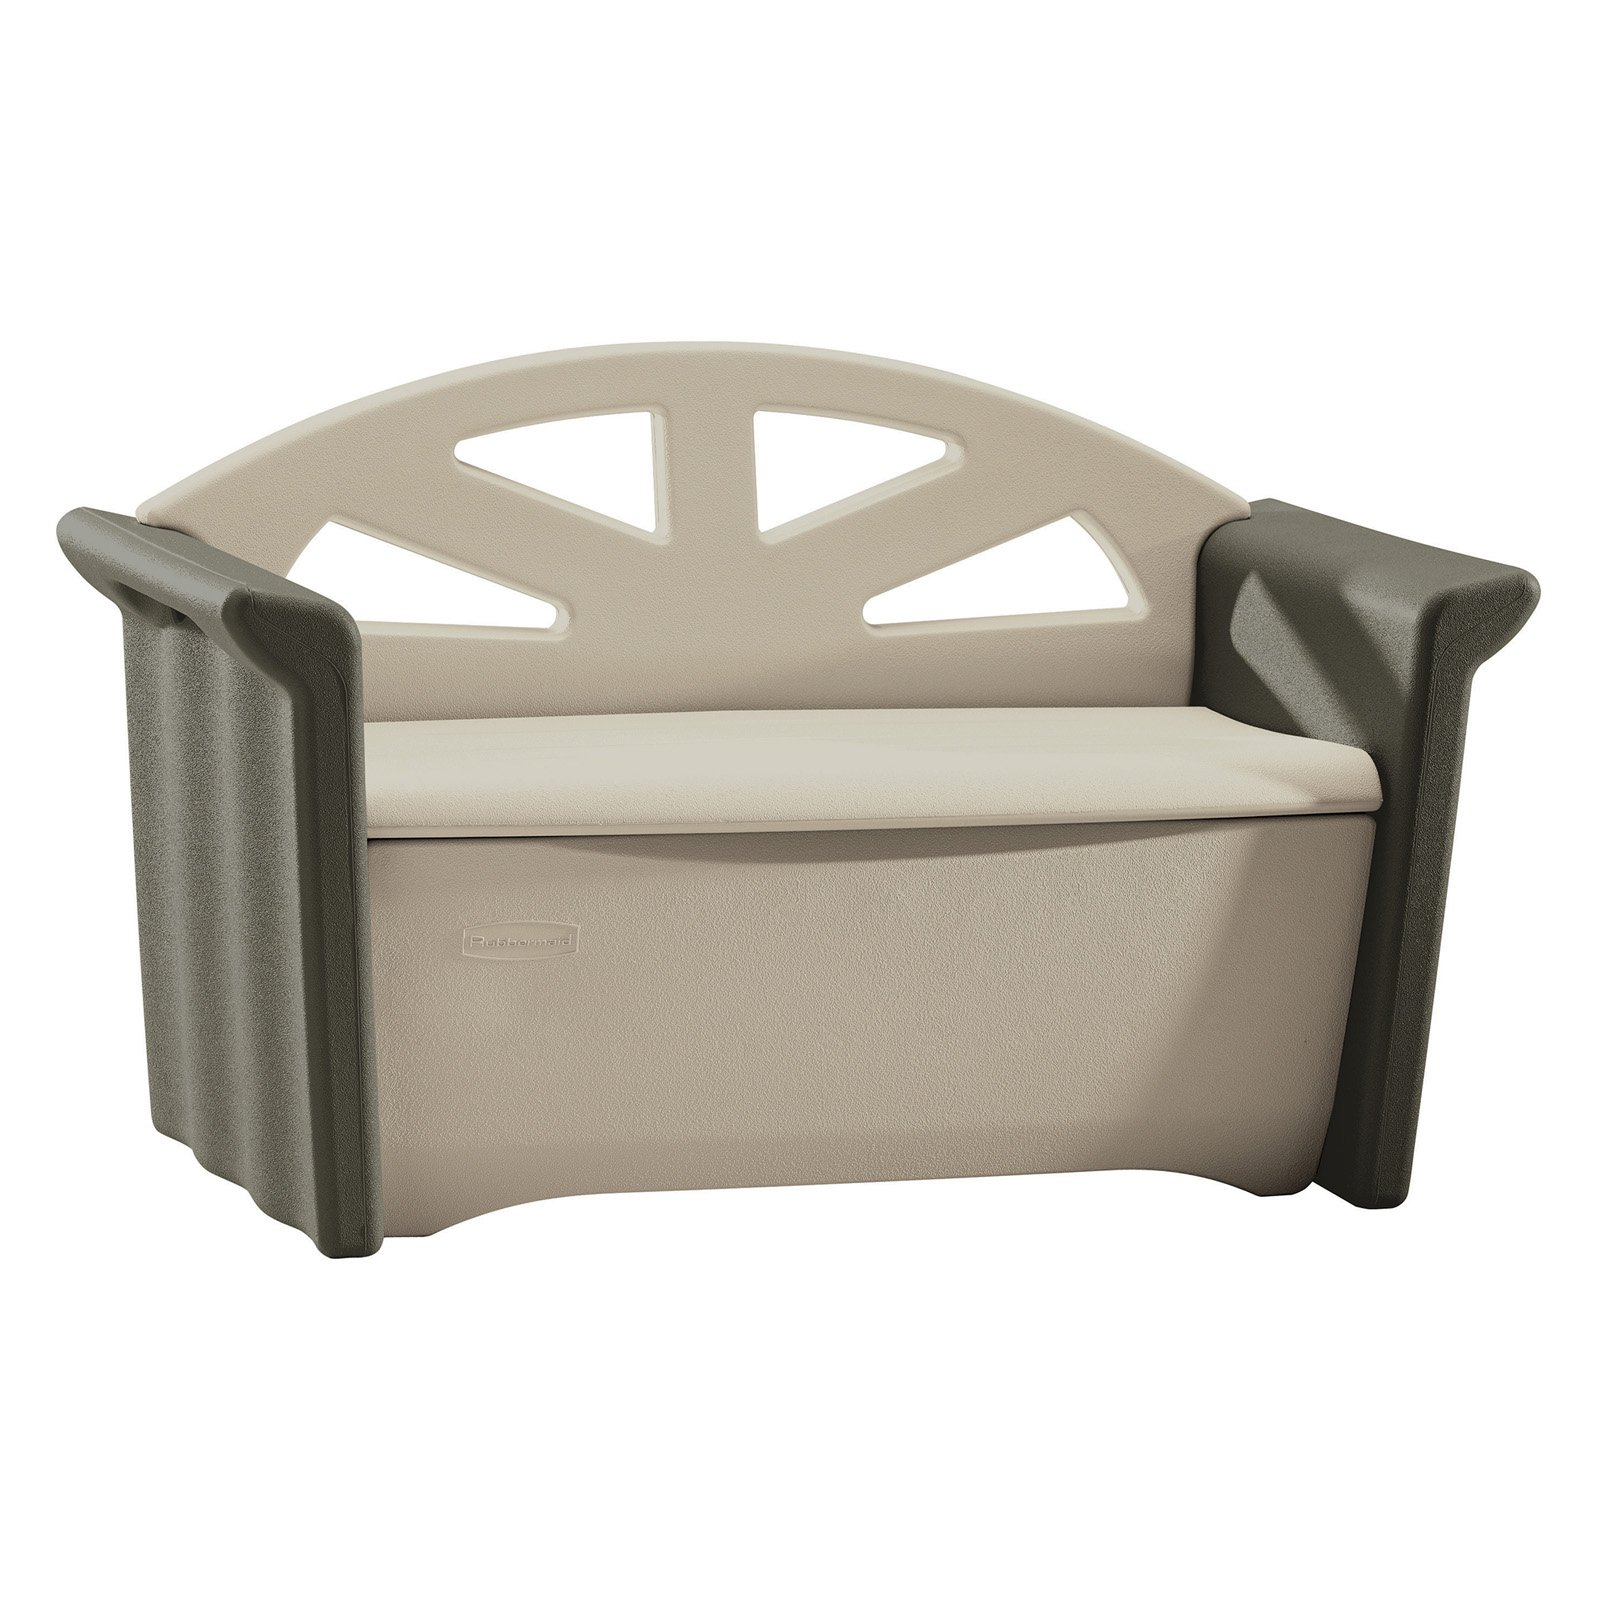 Rubbermaid Patio Storage Bench by Rubbermaid